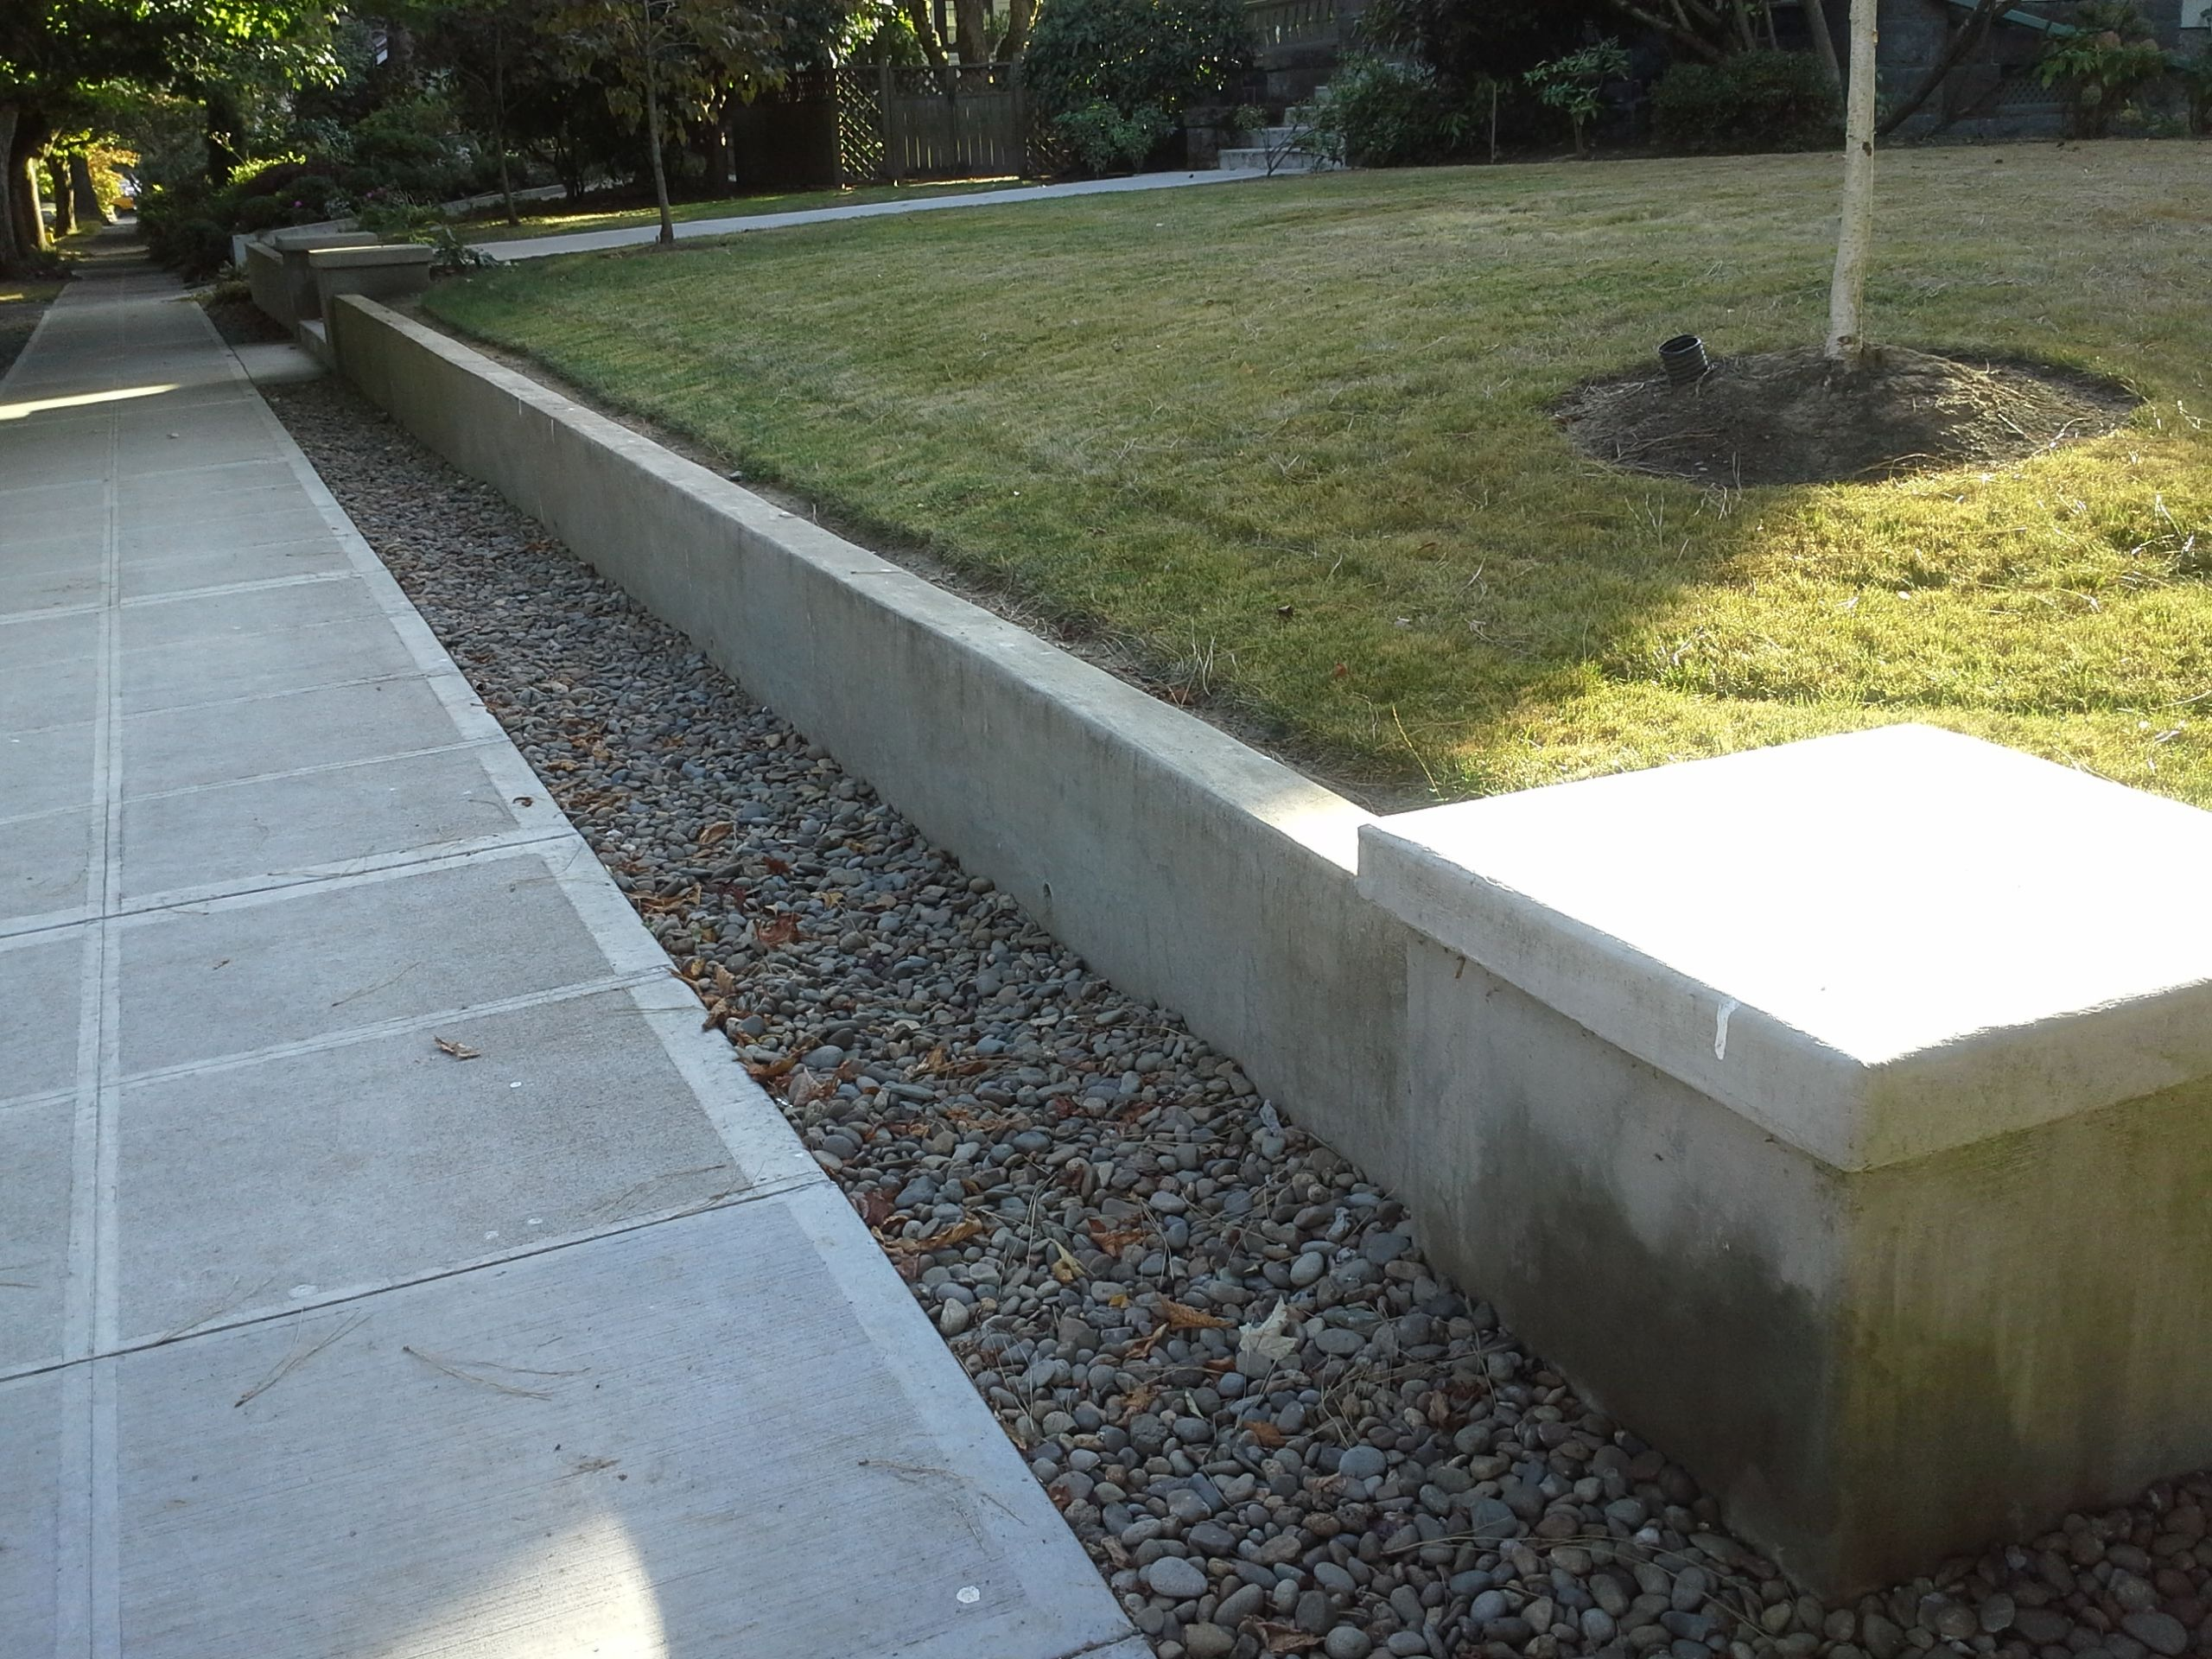 poured in place concrete retaining wall | Outdoor Decor in